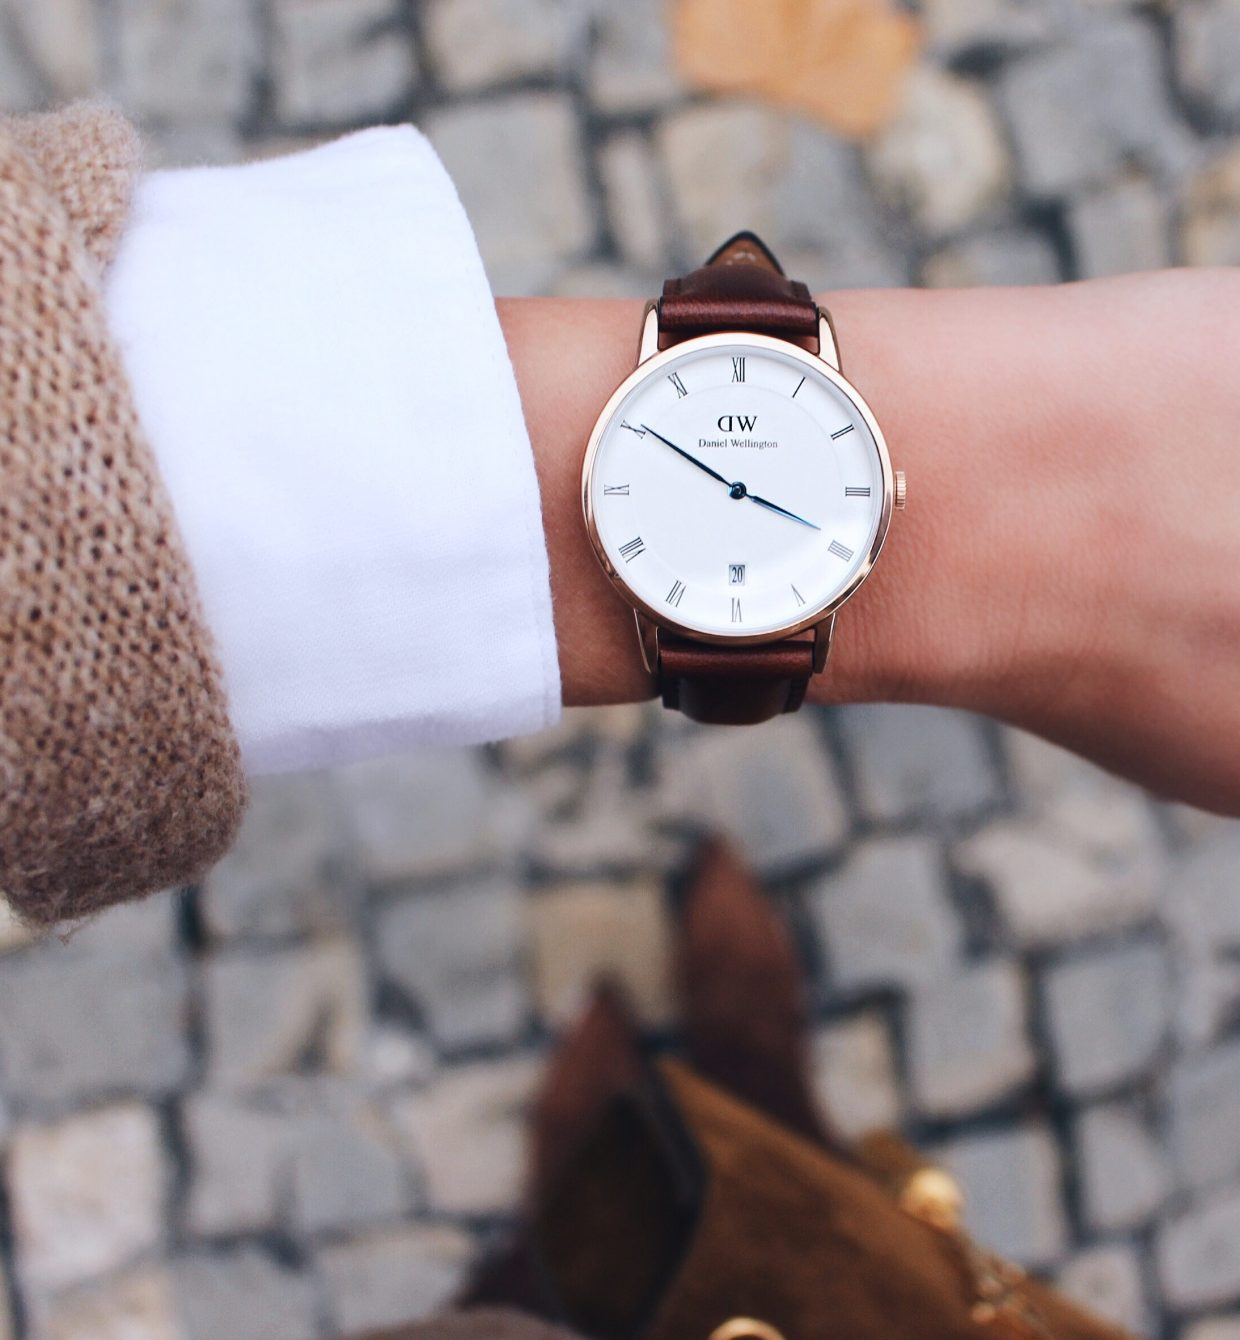 NEW in# Daniel Wellington!